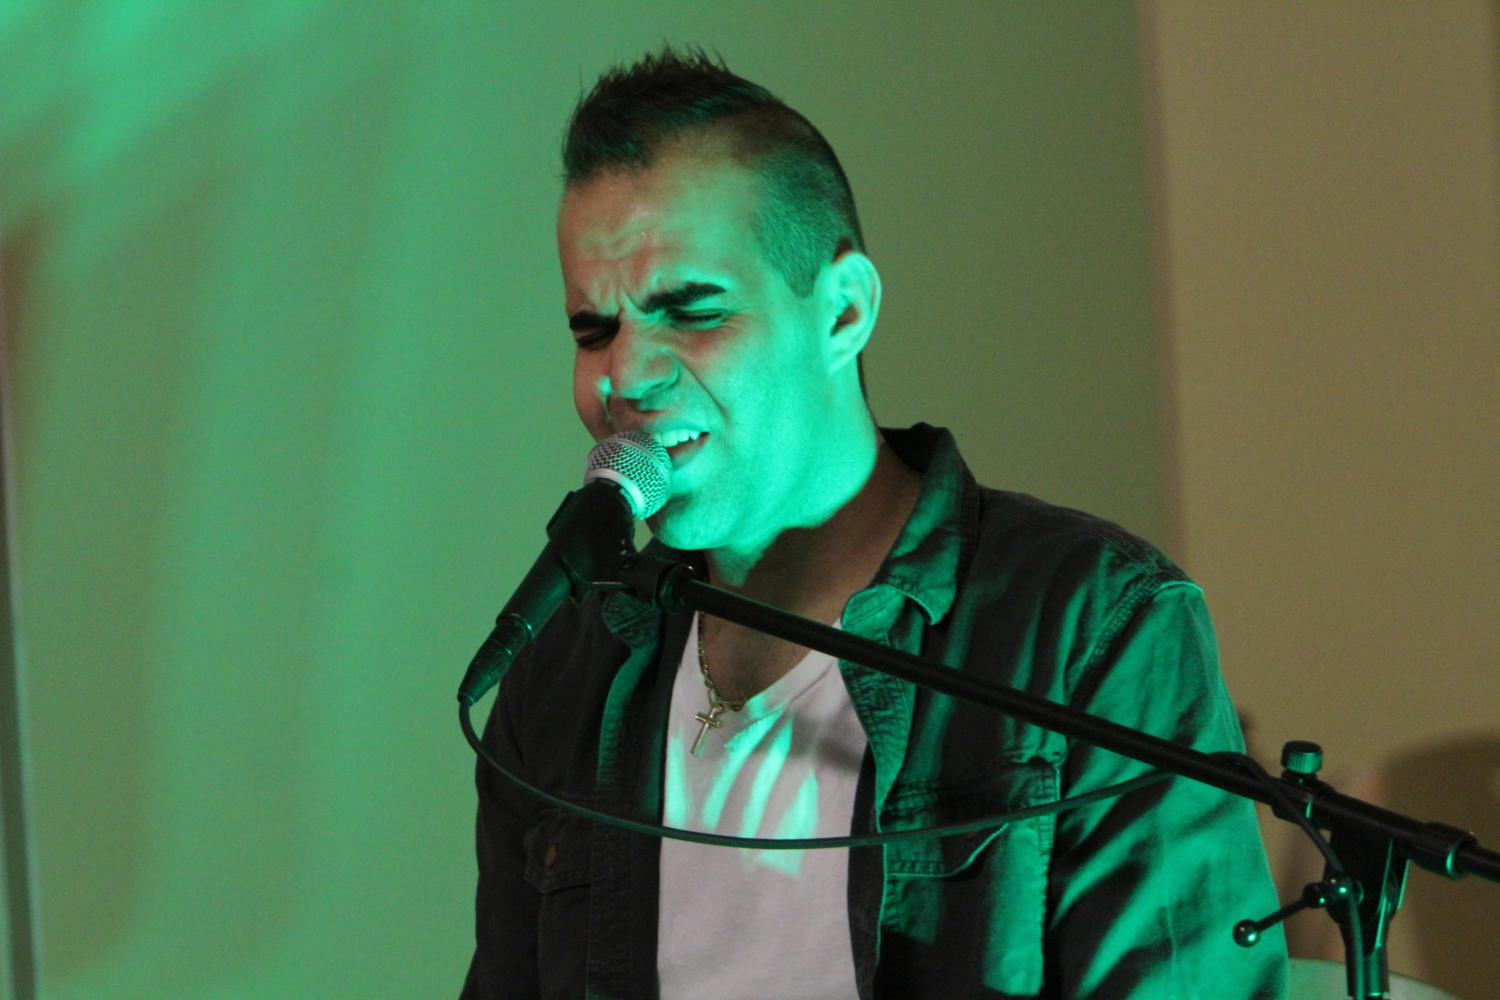 Nick Barilla performs at Underground Cafe on Oct. 12.